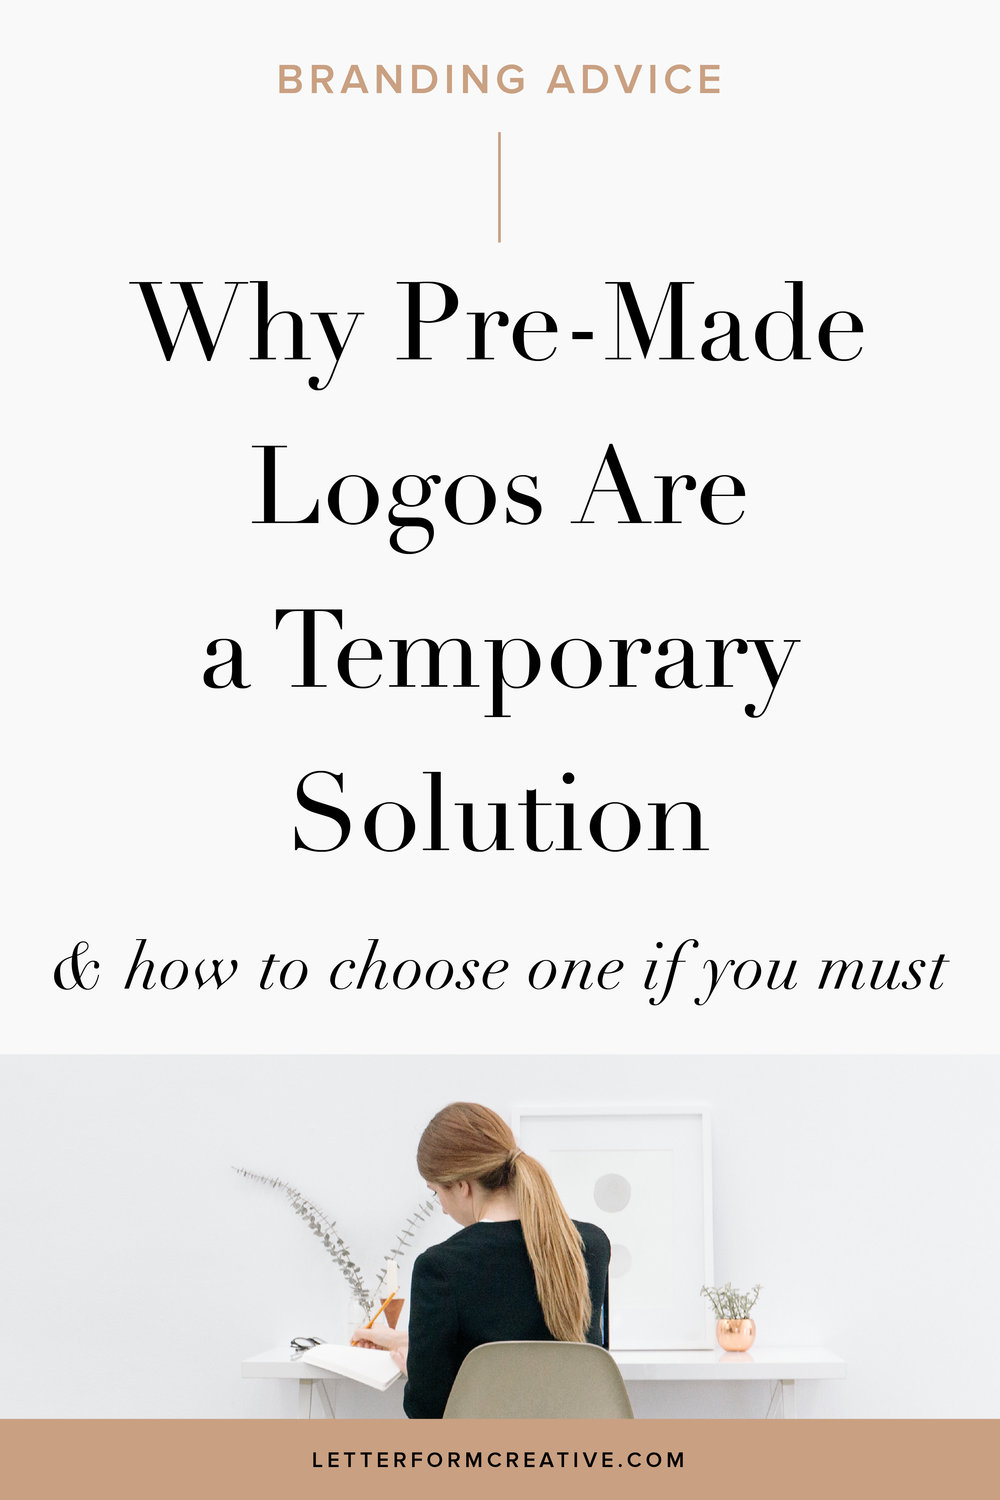 Hey Small Business owner, are you still using a cheap, pre-made logo from Etsy? If so, read this article! Not only does it explain why pre-made logos are a temporary solution, it also tells you how to choose one if you need to for the short-term. Click through to determine if you've outgrown your pre-made logo and to find out if it's time to invest in a custom one.